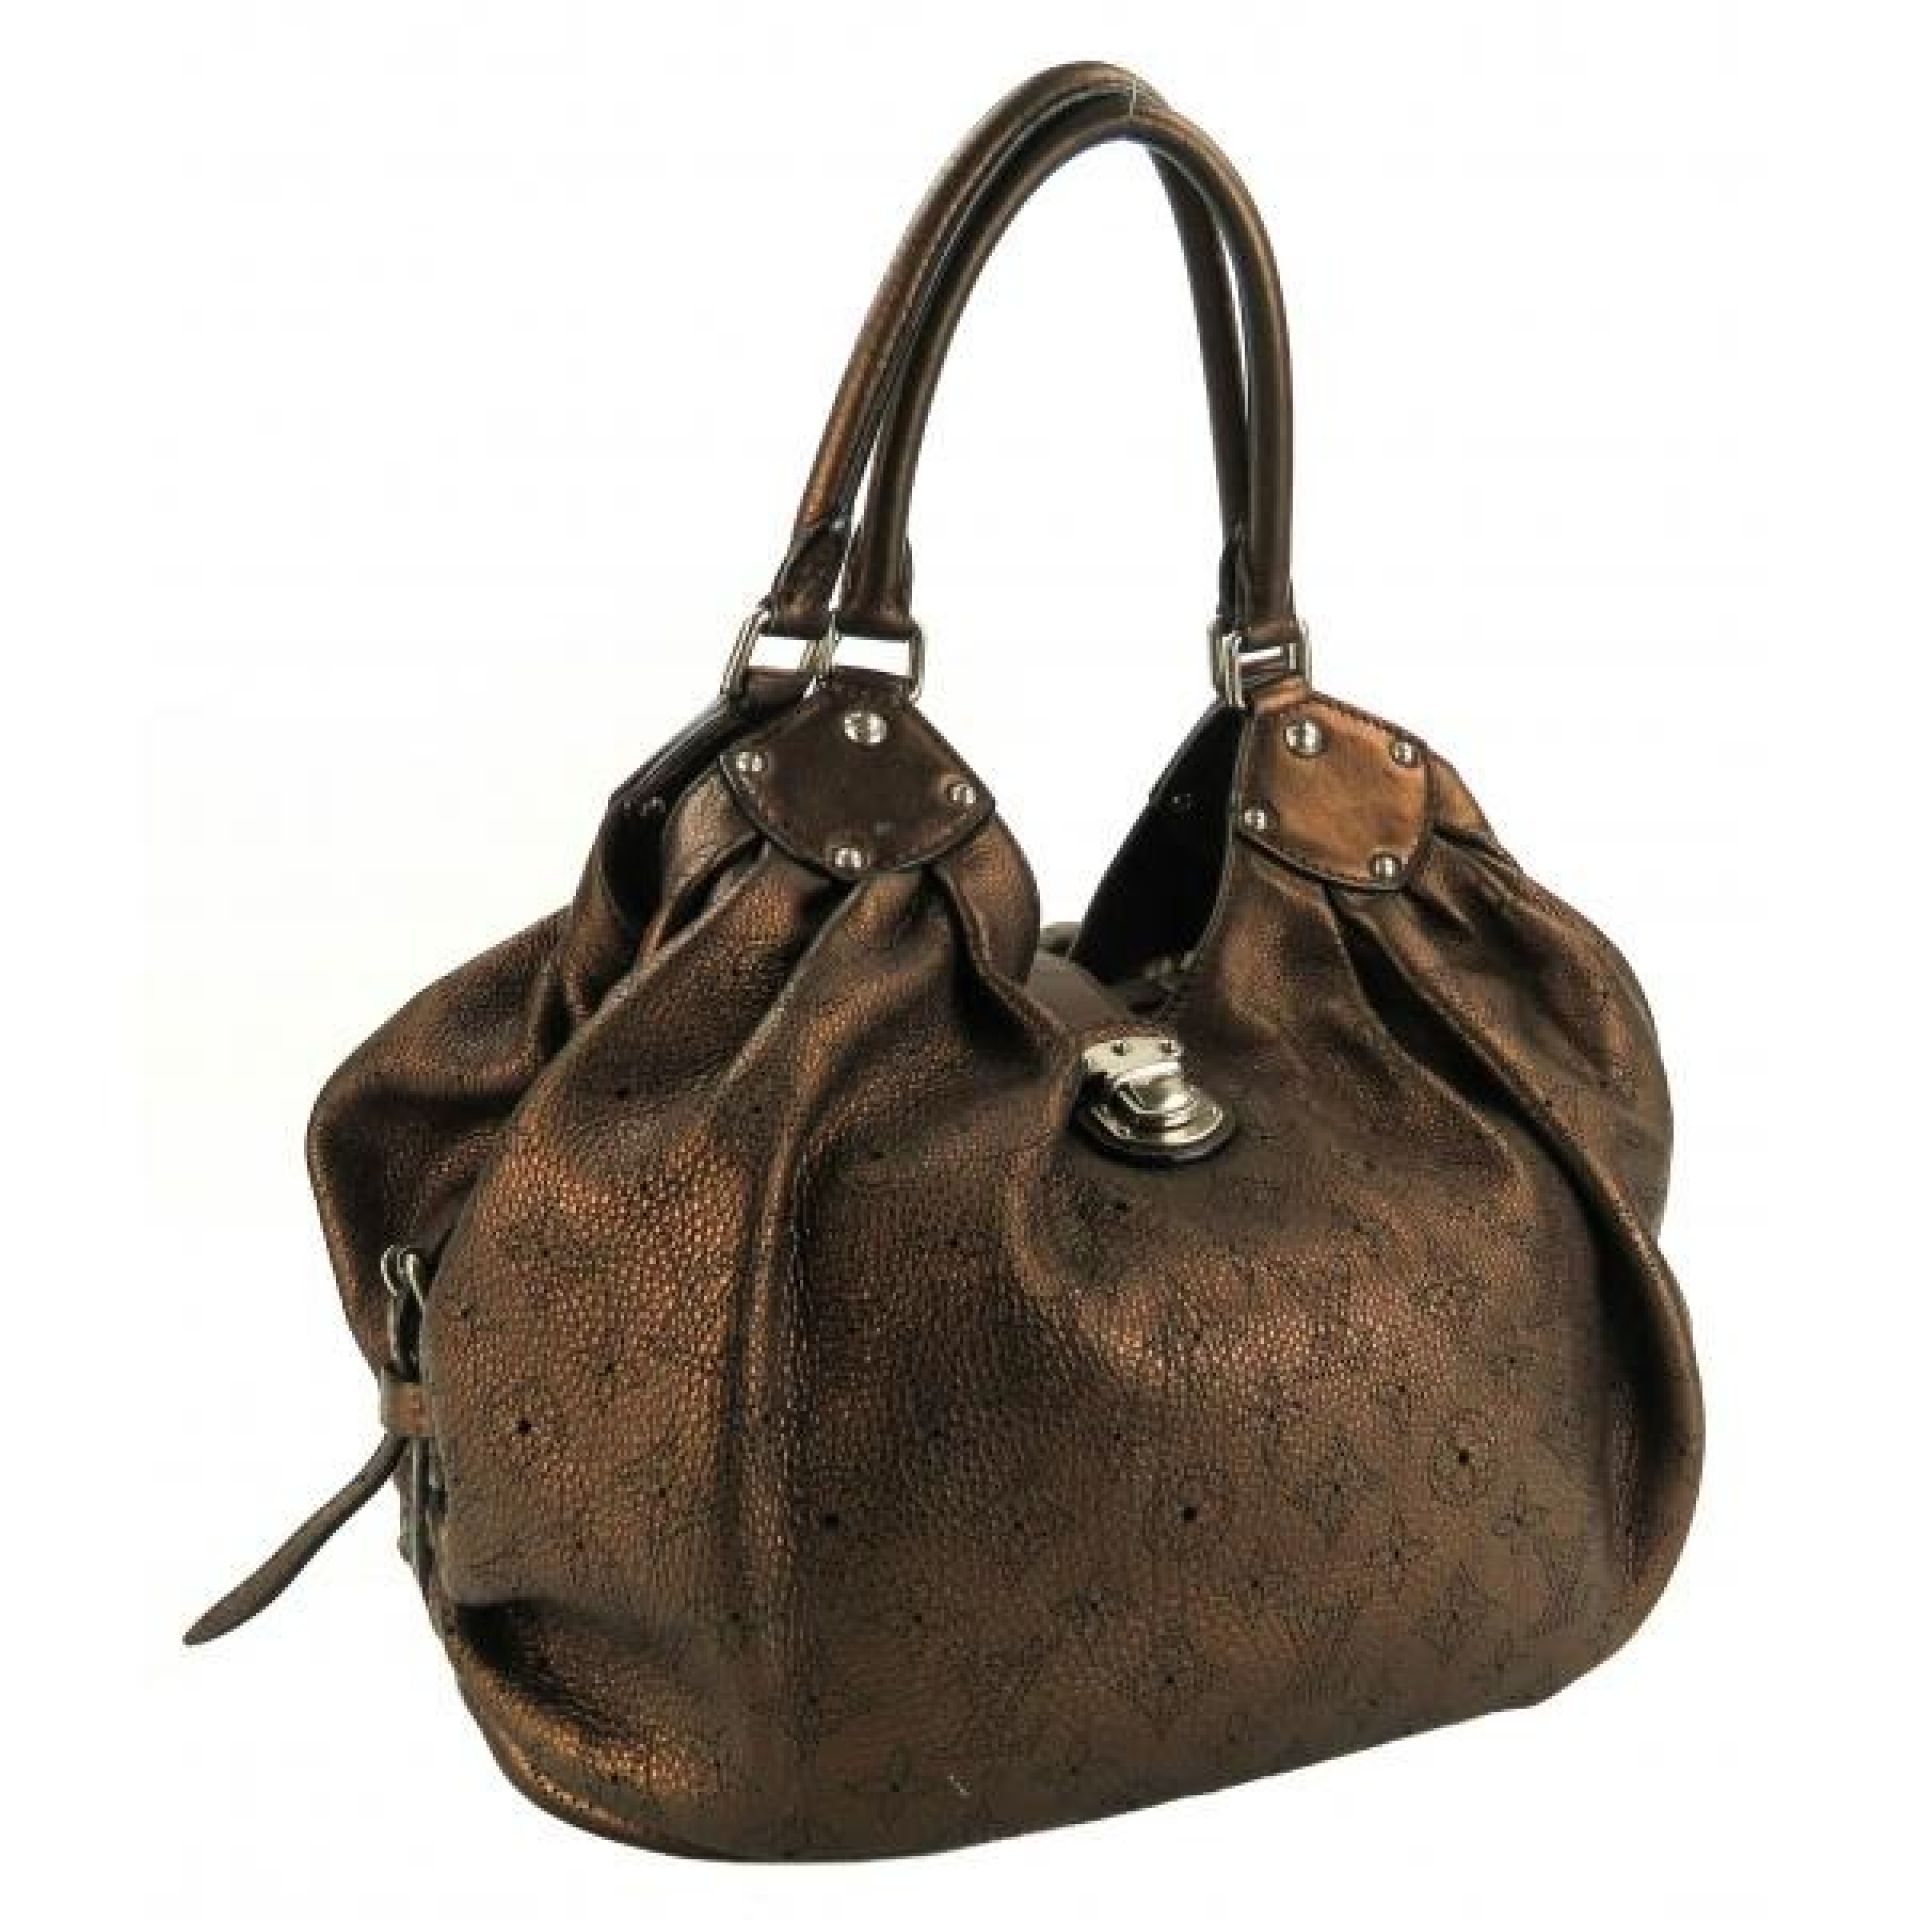 Louis Vuitton Bronze Metallic Perforated Mahina Leather L Shoulder Bag